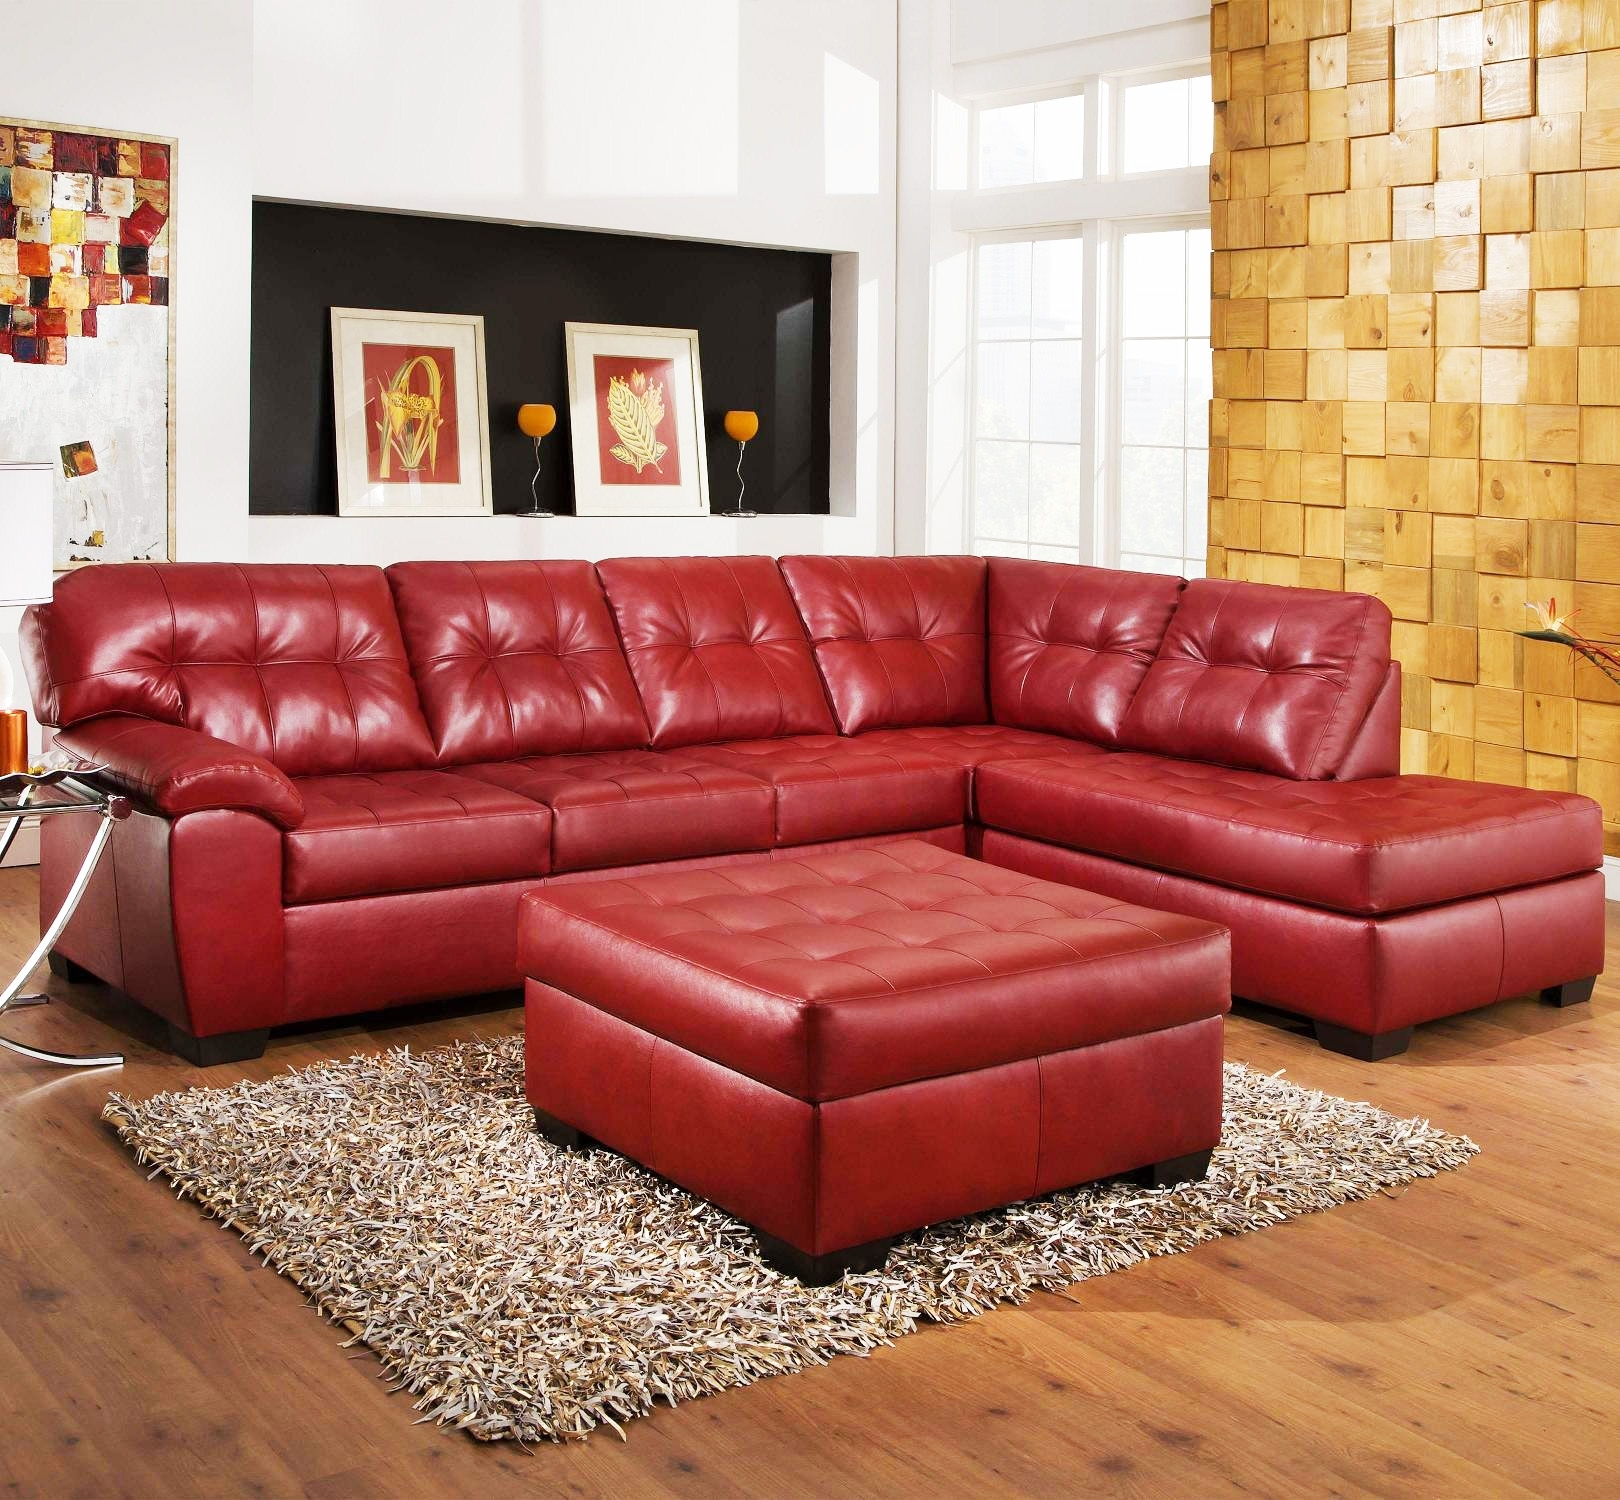 Living Room: Astonishing Rooms To Go Sectional Leather Havertys pertaining to Red Faux Leather Sectionals (Image 5 of 15)